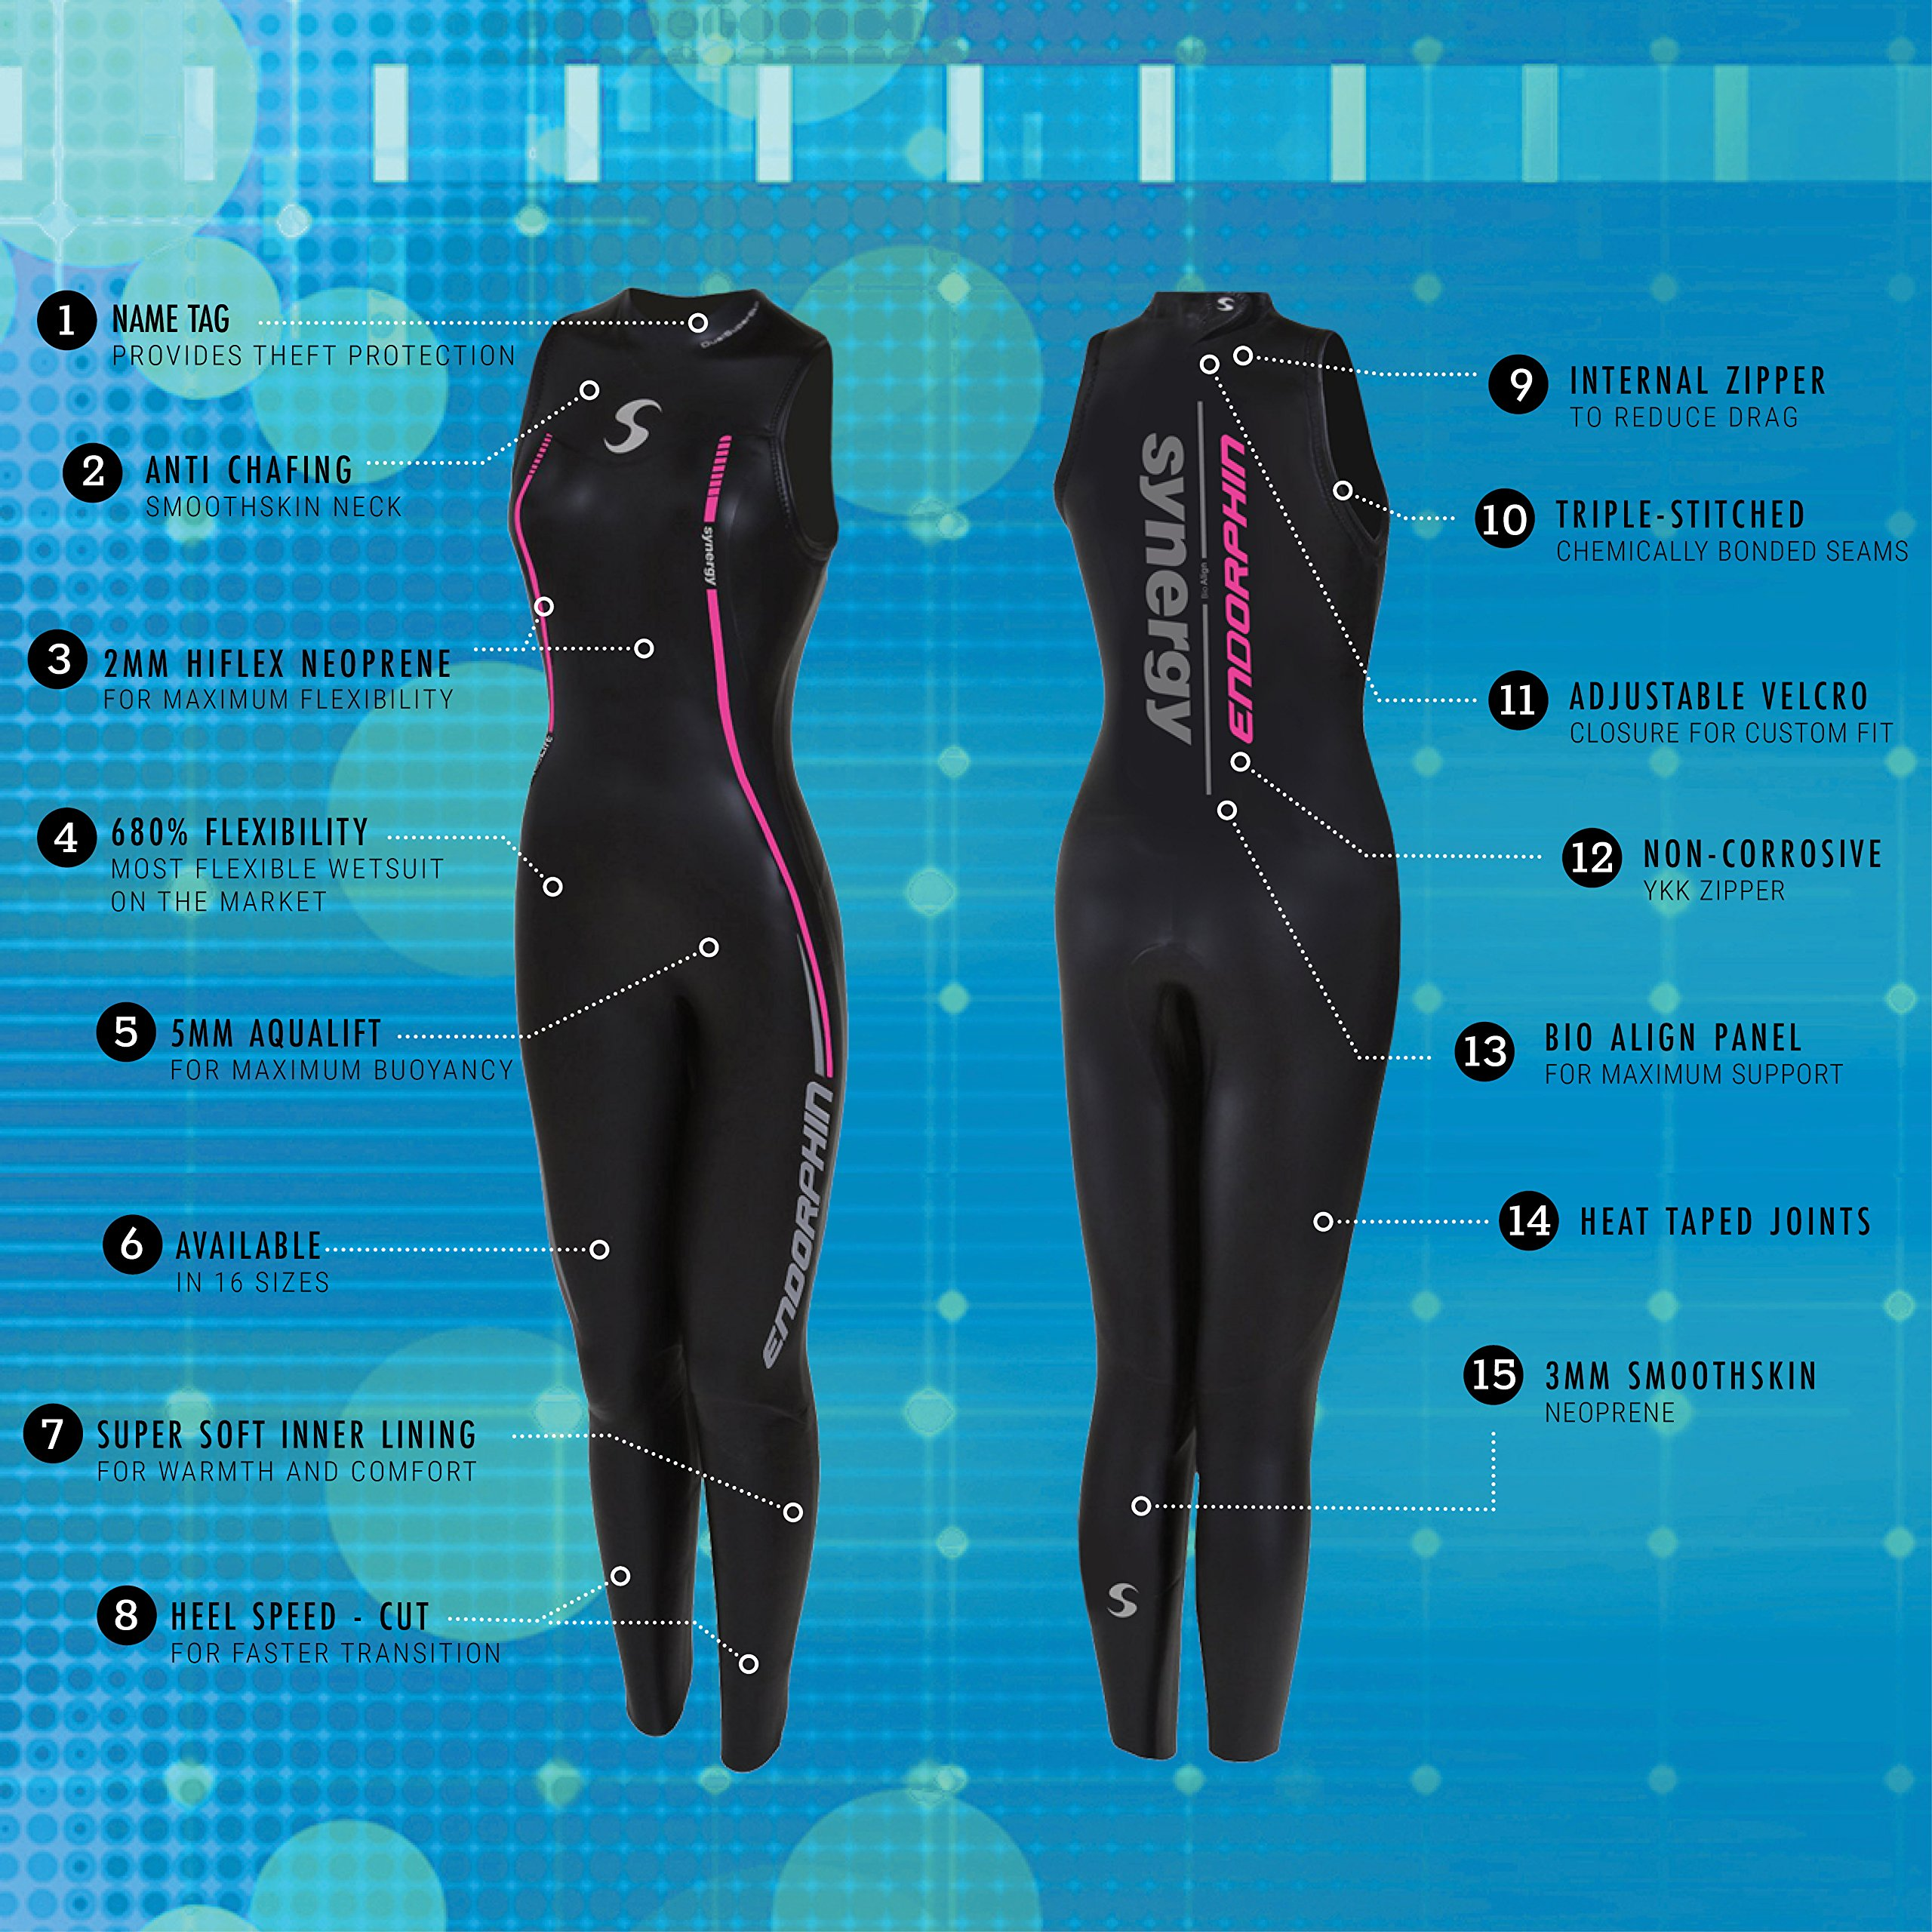 c8c88fe97e1 Synergy Triathlon Wetsuit 5/3mm - Women's Endorphin Sleeveless Long John  Smoothskin Neoprene for Open Water Swimming Ironman Approved | Team  Immortal ...